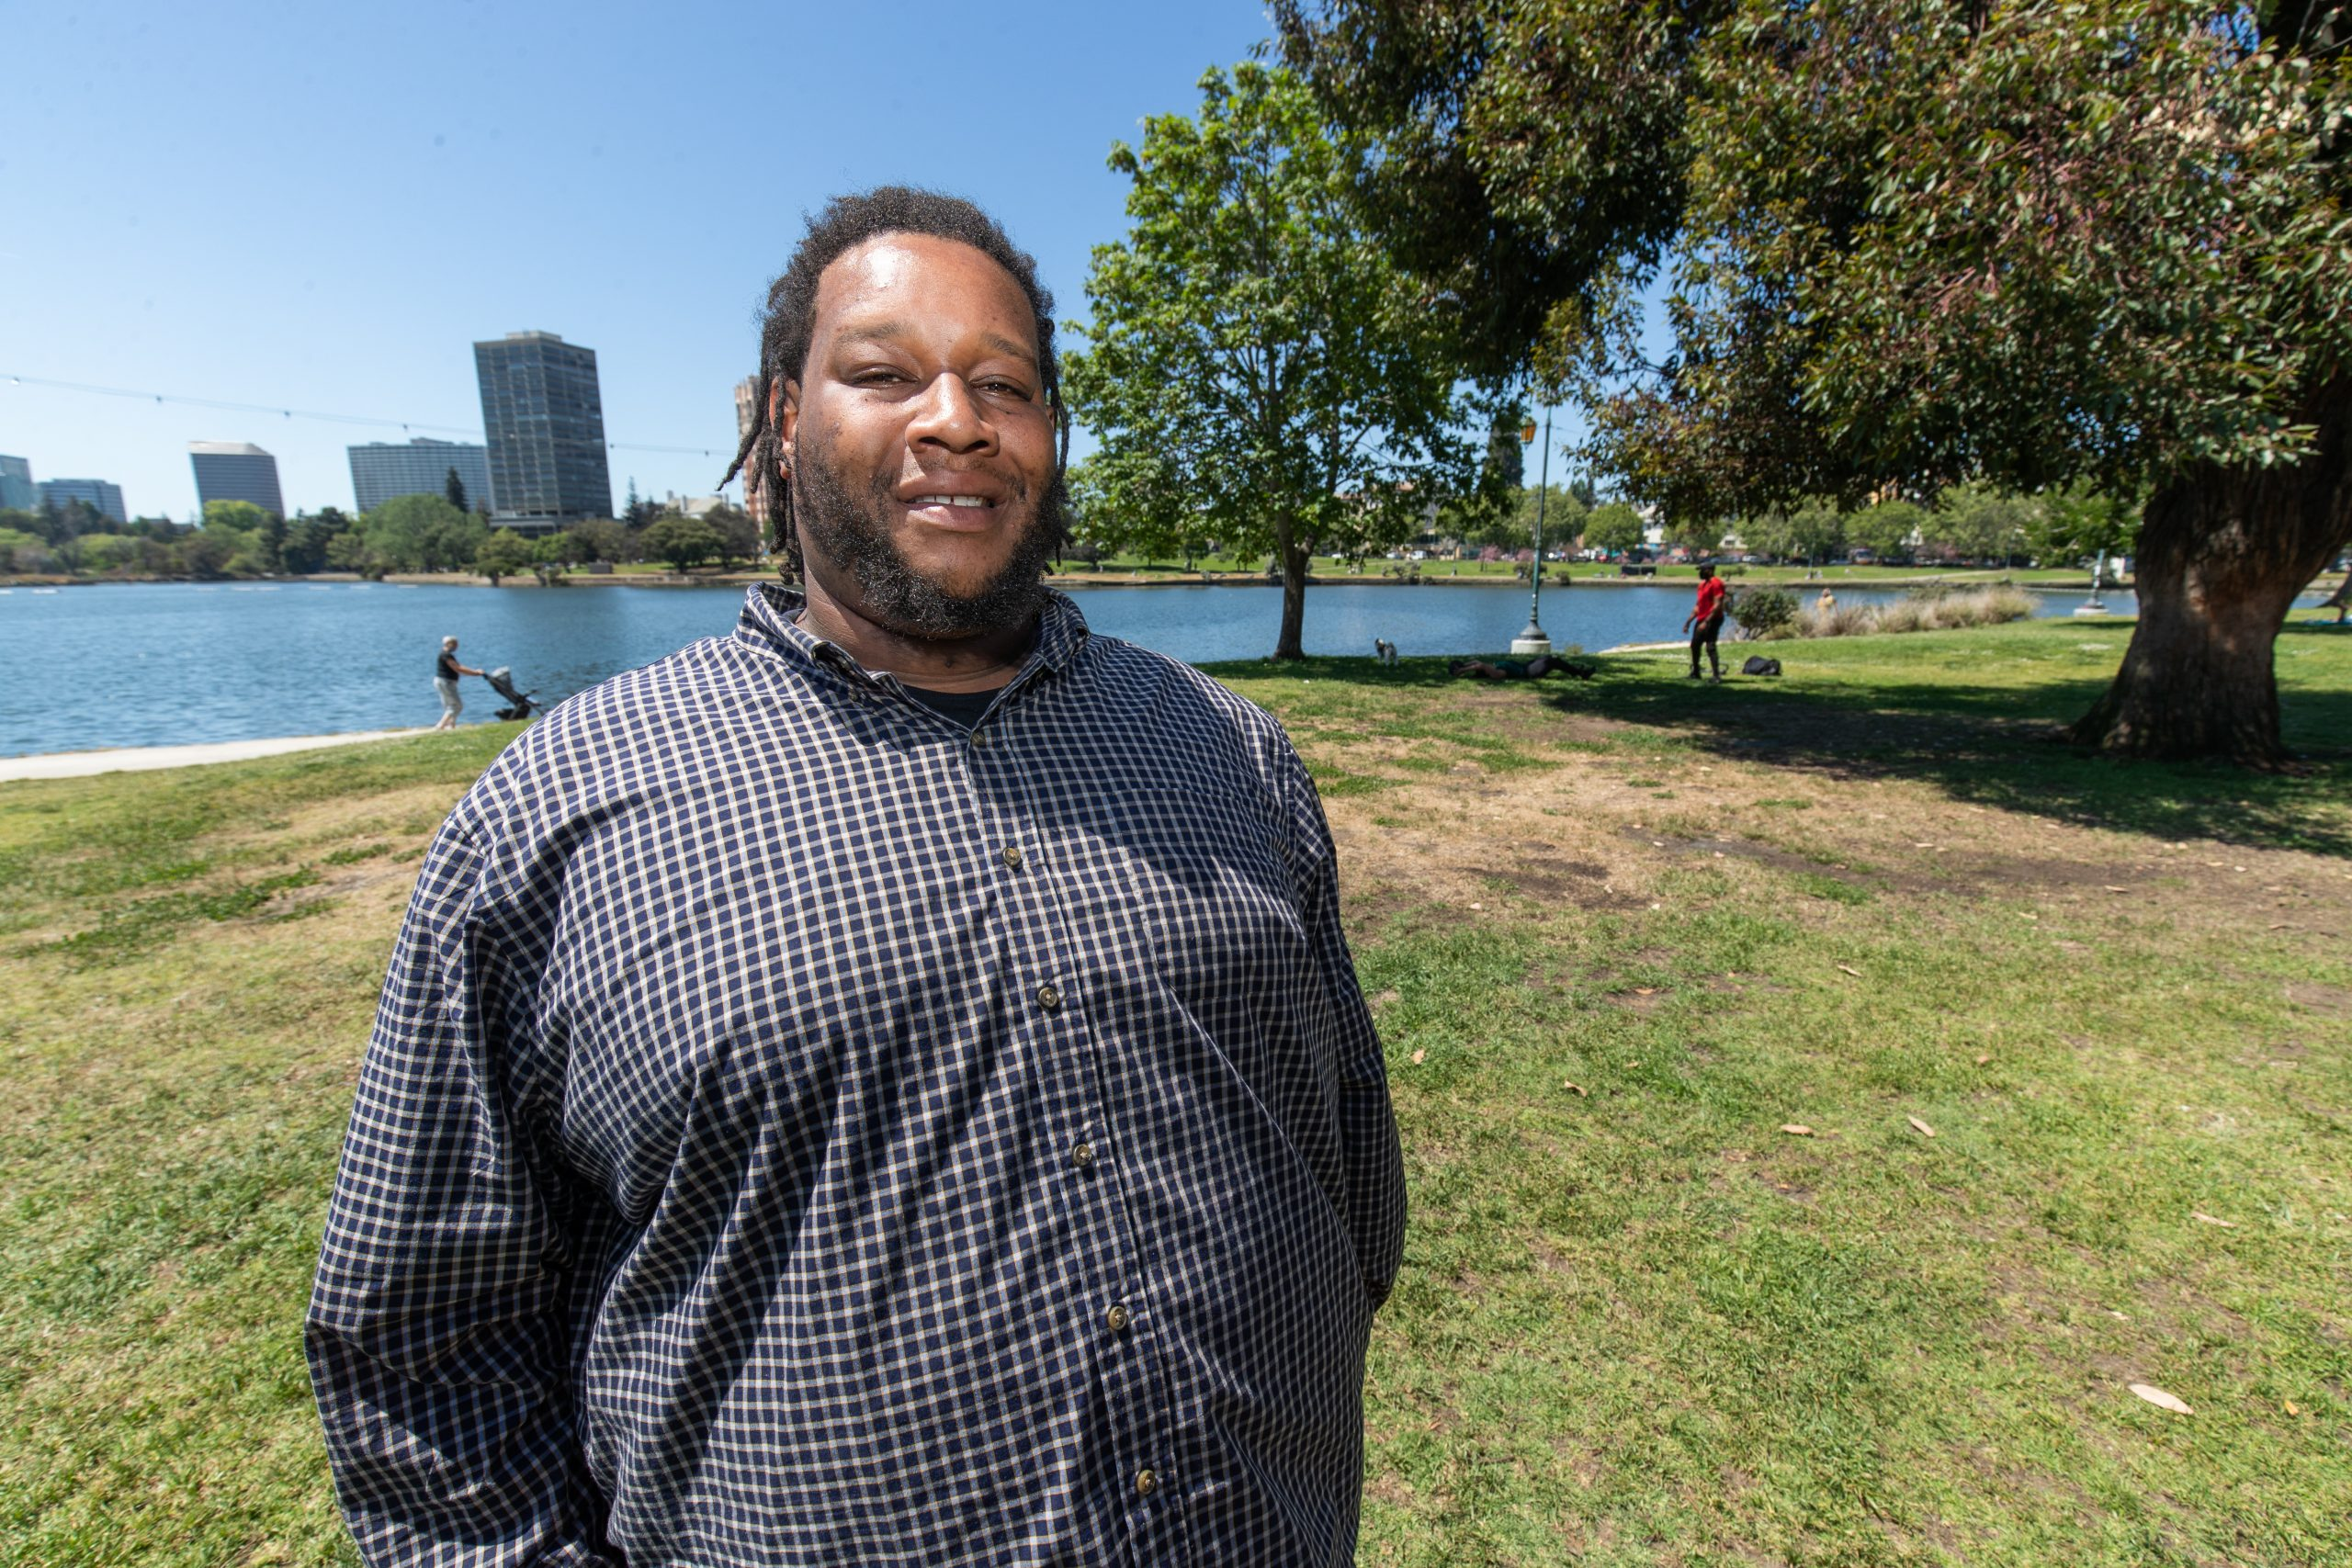 Leon 'DNas' Skyes on how the Lakeshore block party 510 Day will work this year